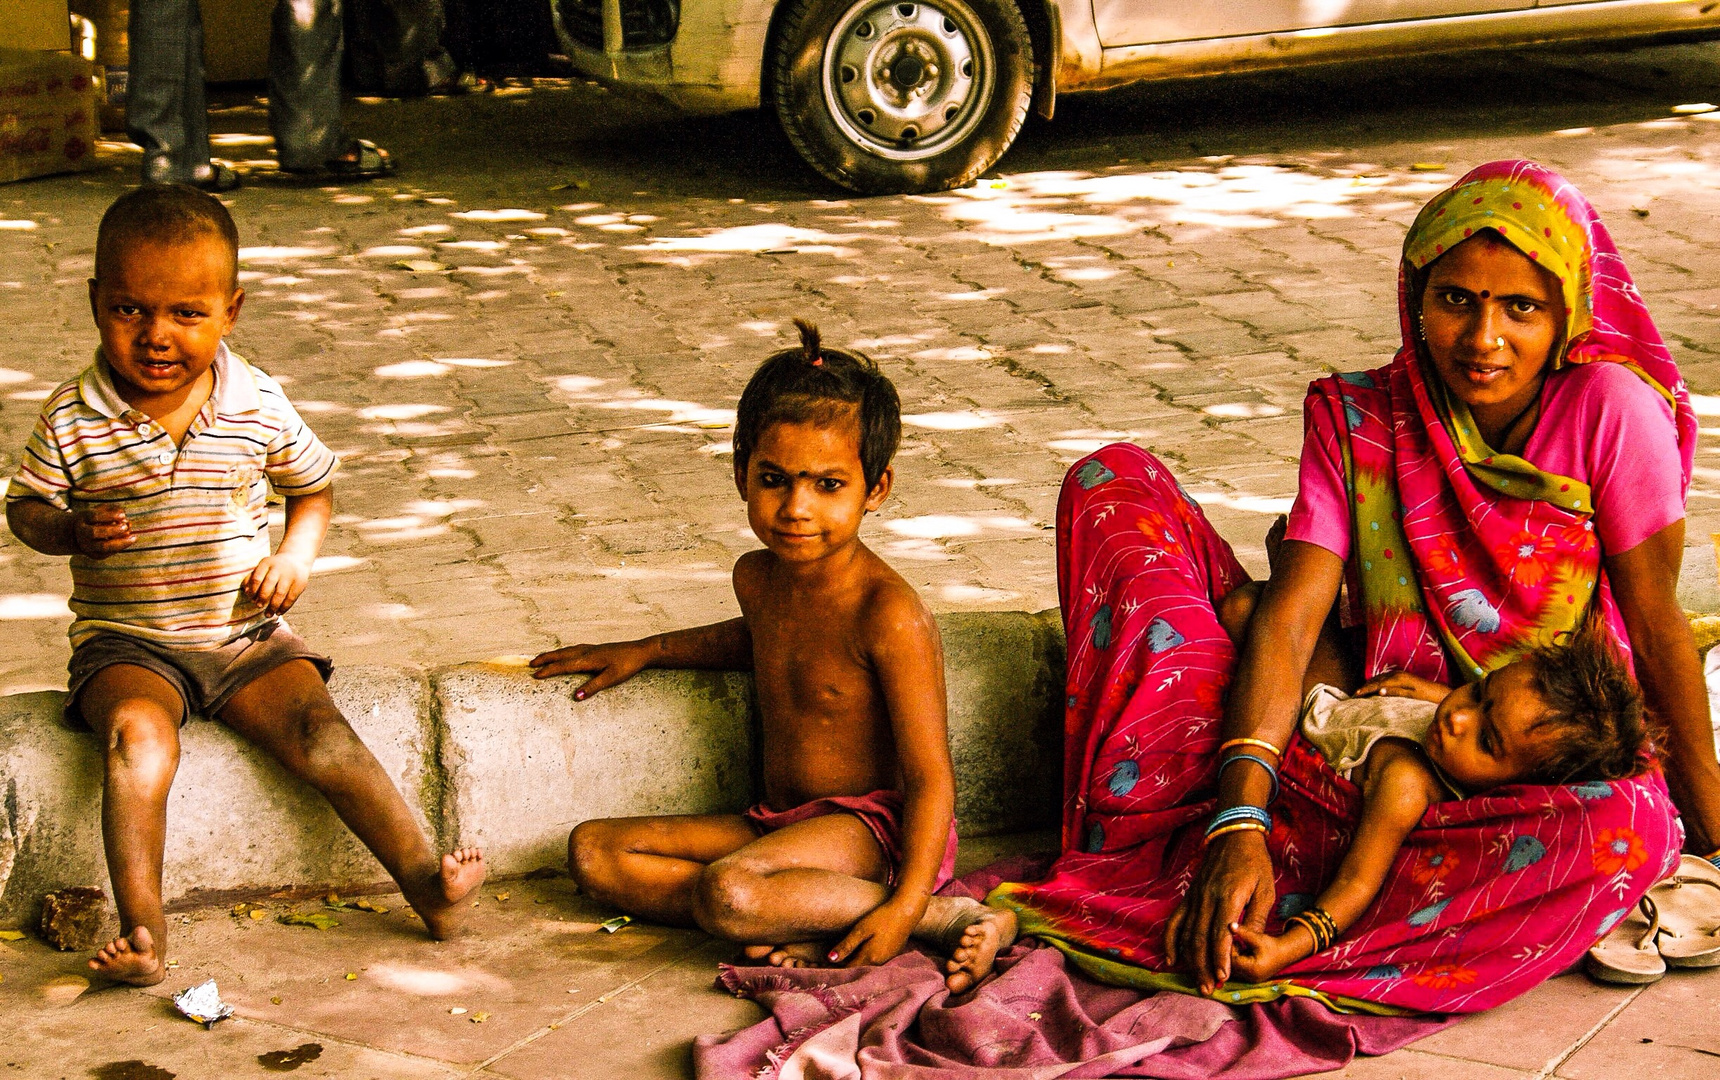 A family at the street